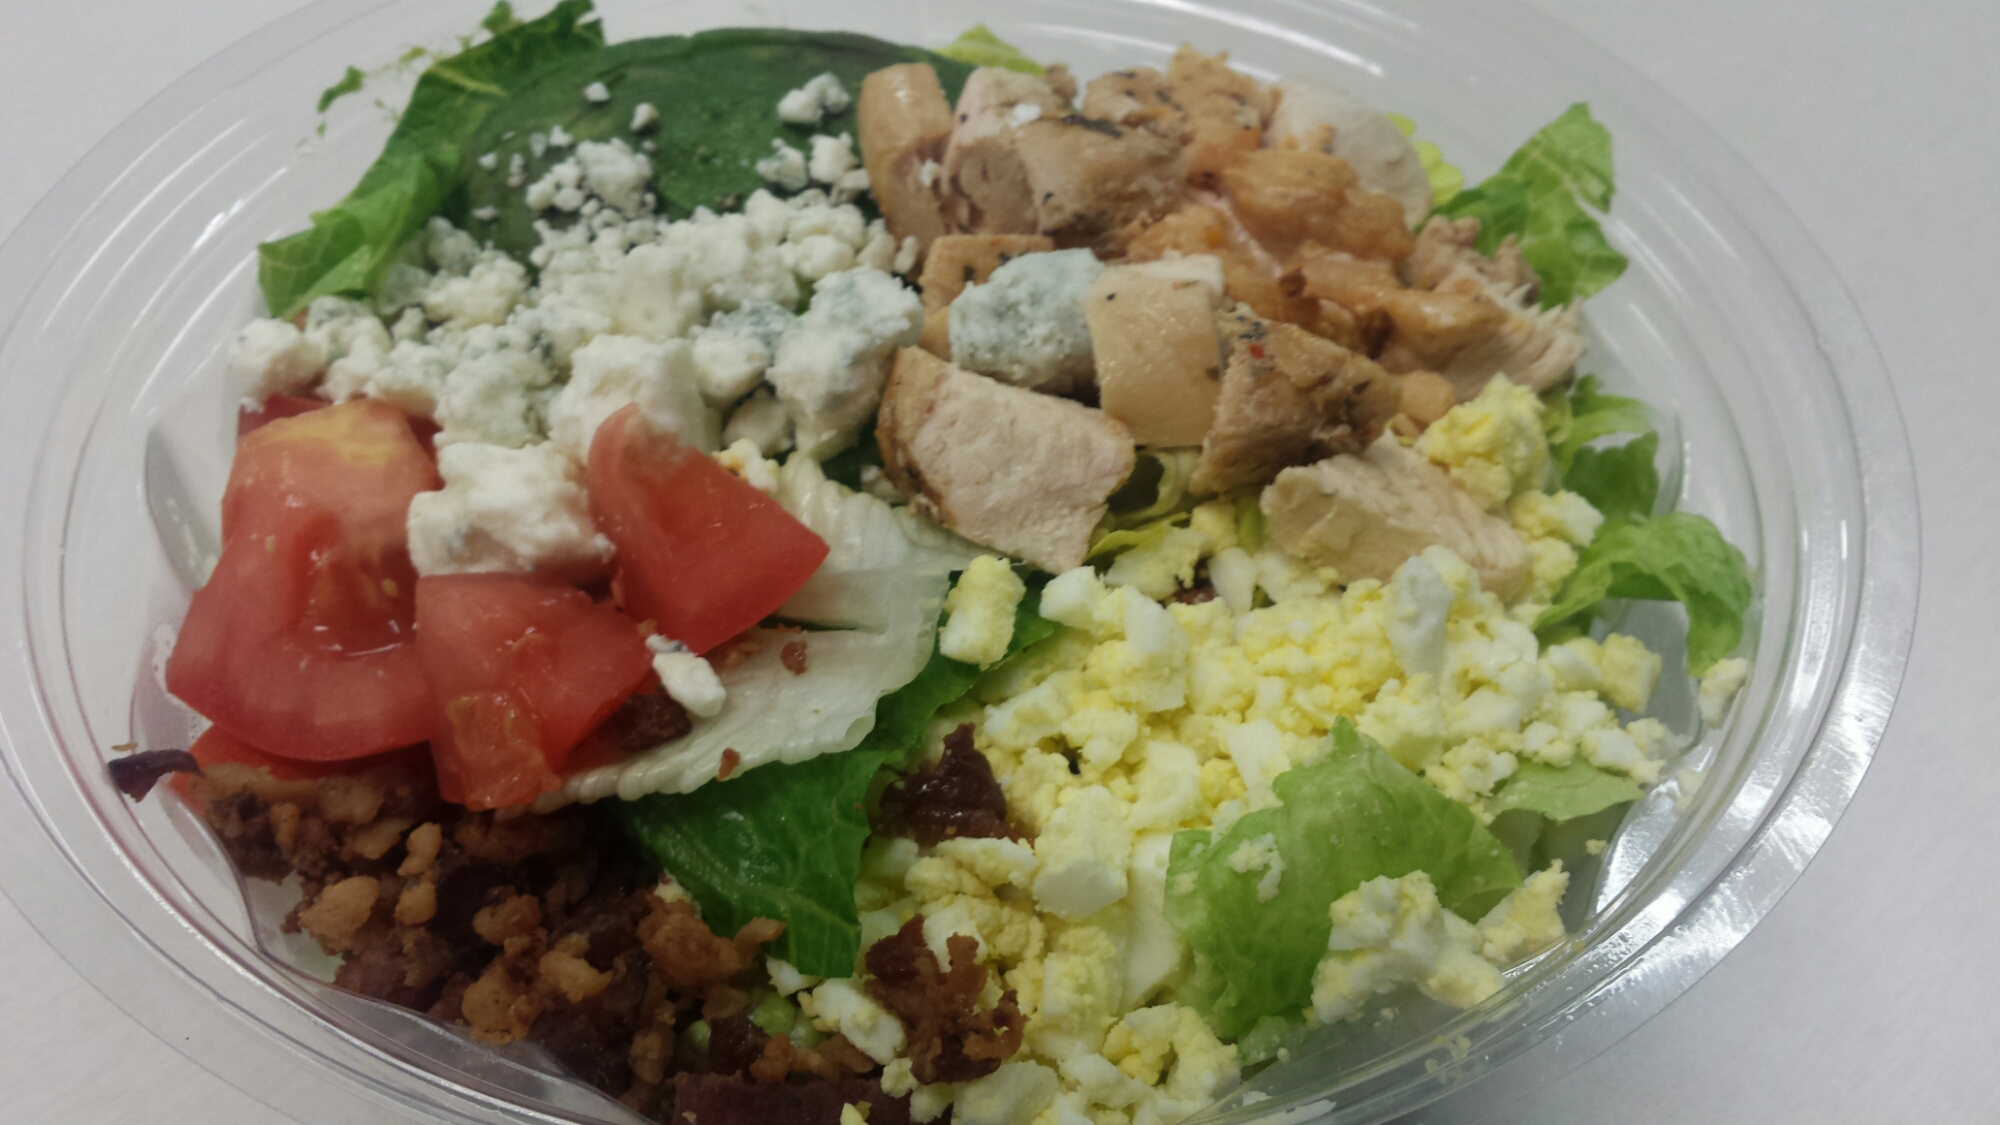 Cobb Salad - bacon, avocado, boiled eggs,blue cheese, tomatoes